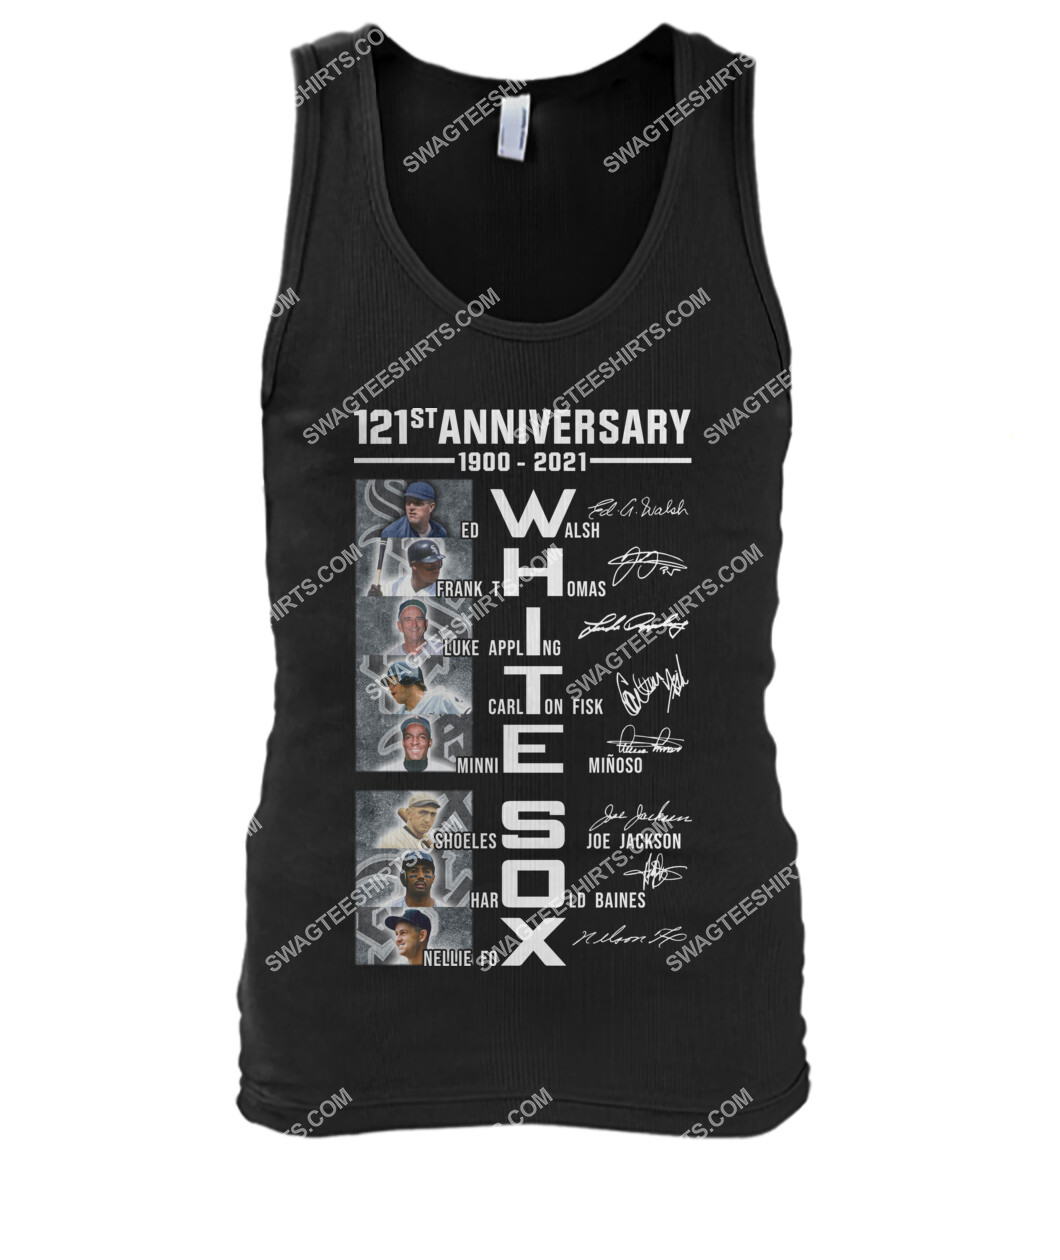 the chicago white sox 121st anniversary 1900 2021 signatures tank top 1